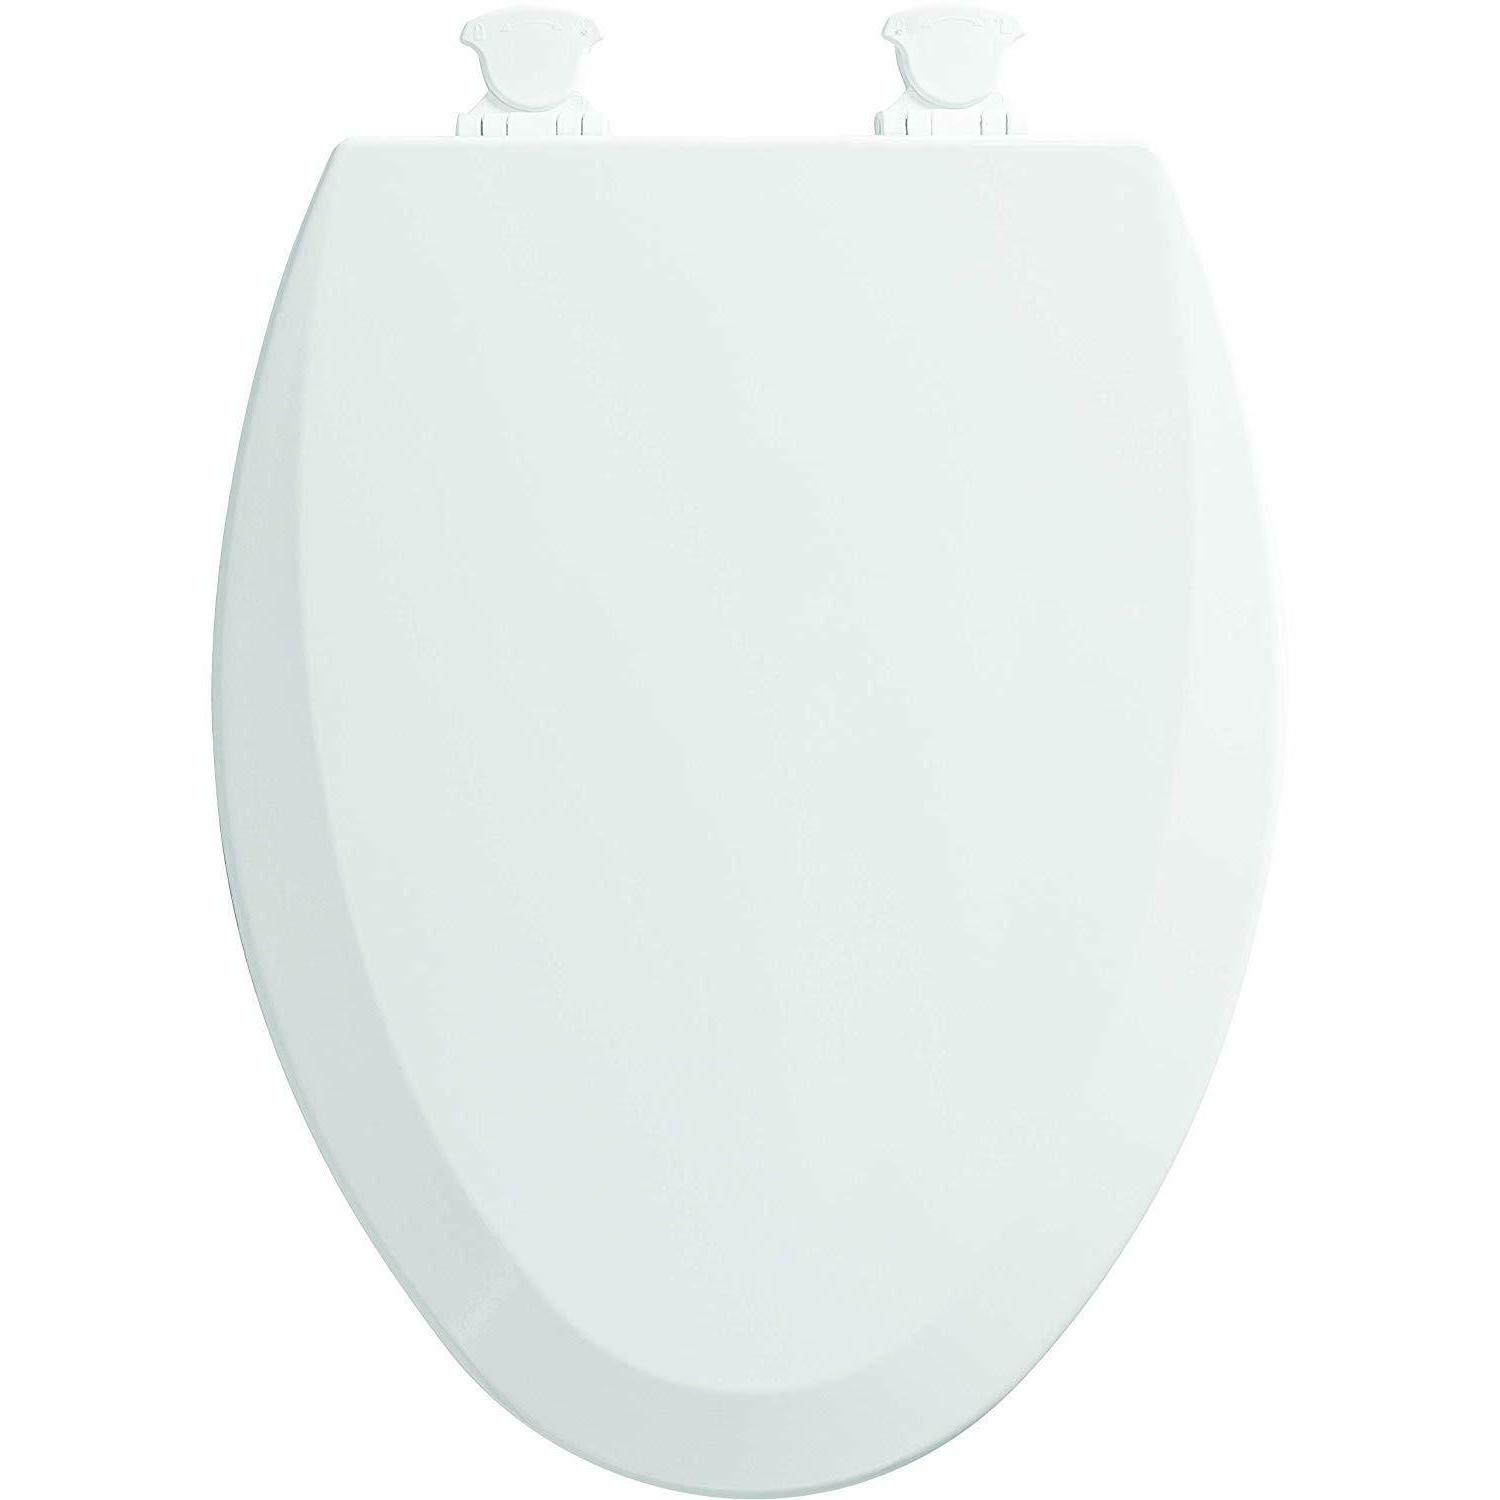 Bemis Toilet Elongated Close Front With White